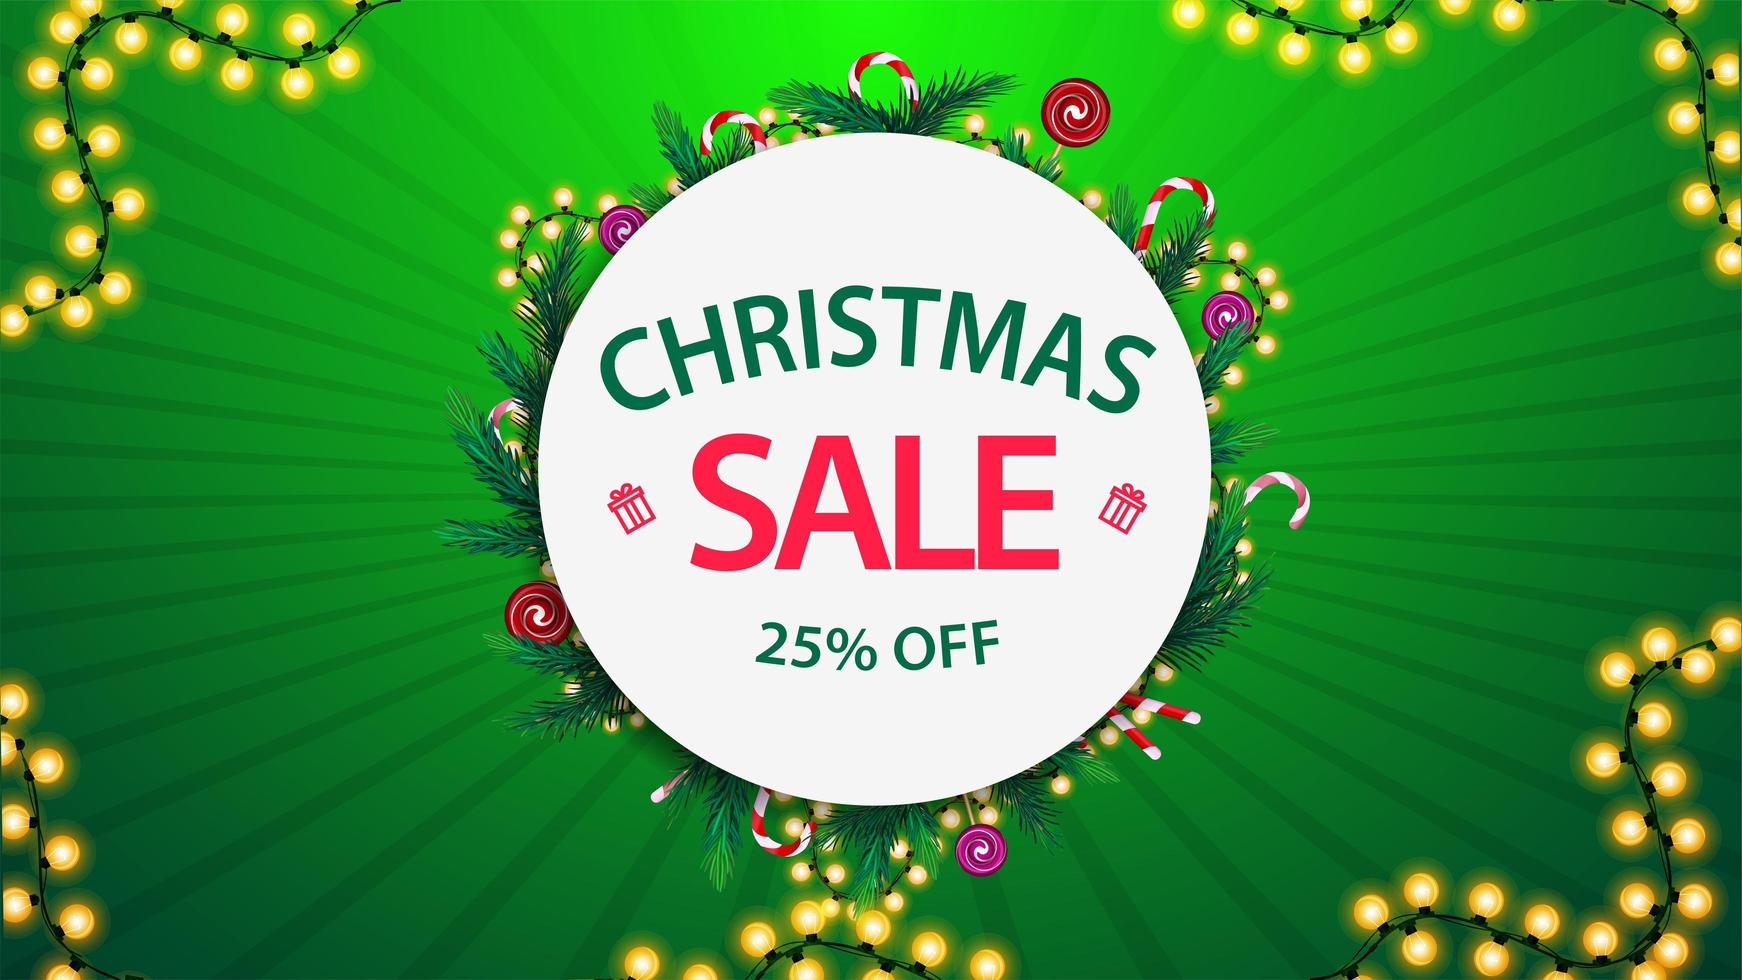 Christmas sale, up to 25 off, green and white discount banner with round frame of Christmas tree branches and garlands vector